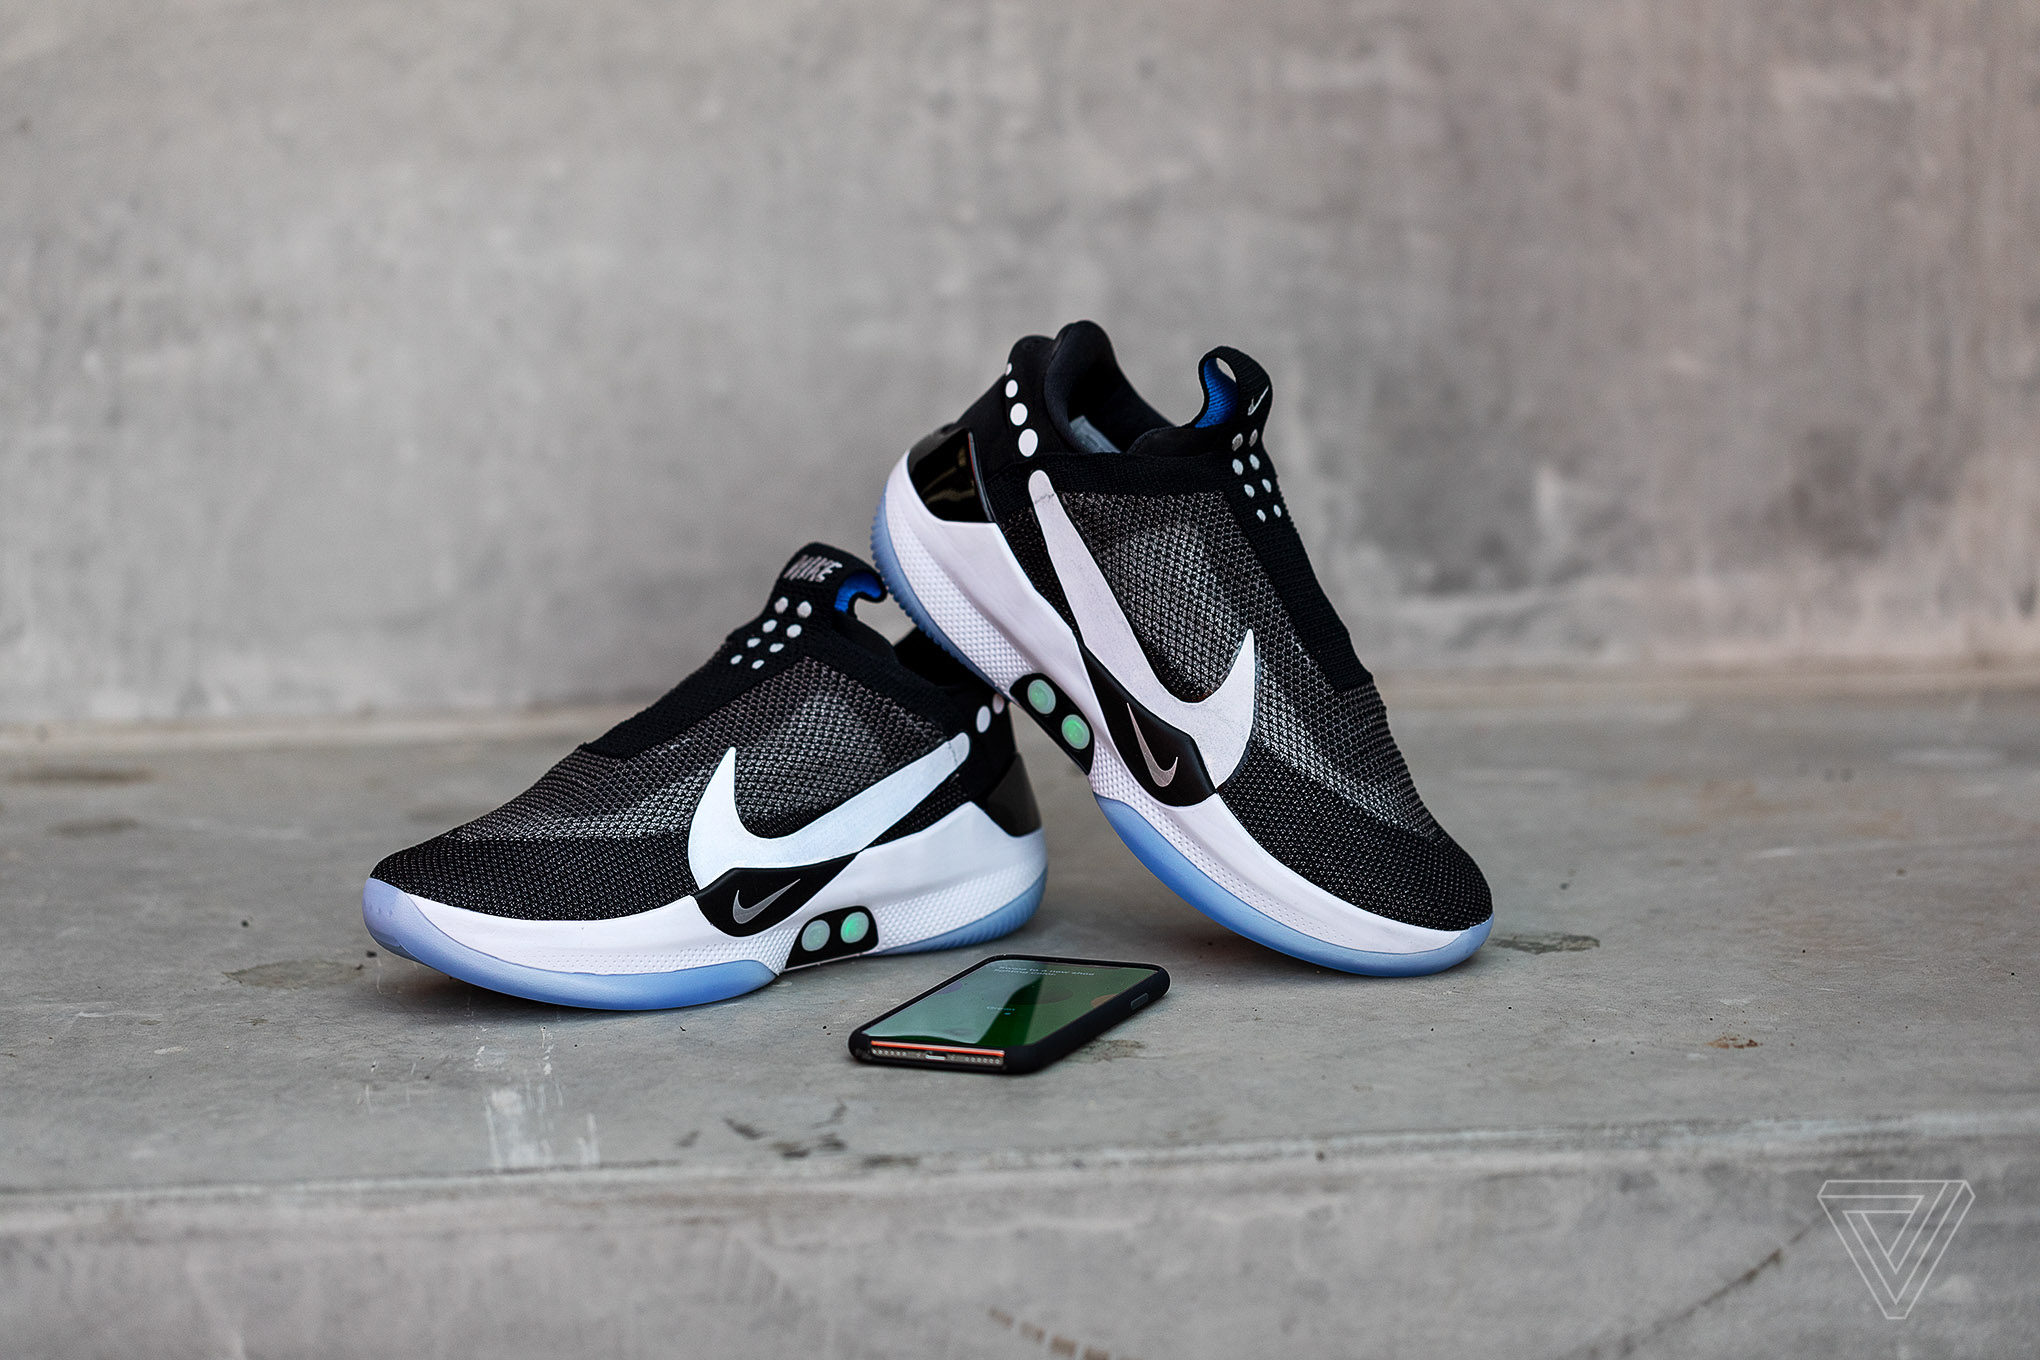 ef262a4f9b Nike's Adapt BB self-lacing sneakers let you tie your shoes from an ...